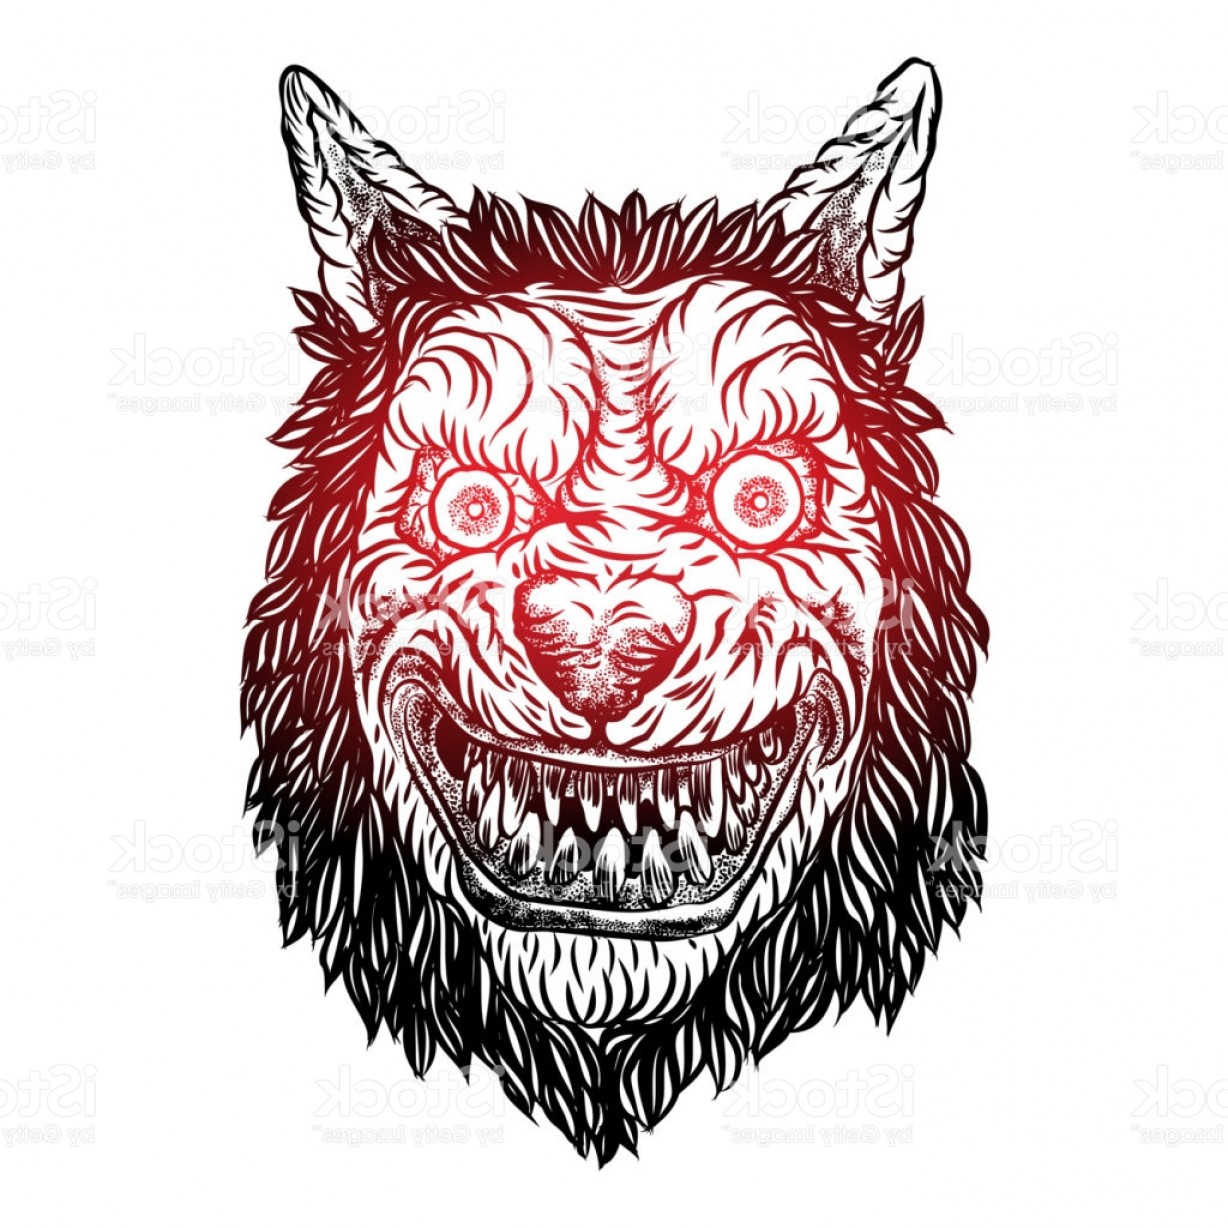 Full Moon Werewolf Vector 900: Angry Smiling Cunning Wolf Mascot Head Werewolf Blackwork Tattoo Flash Concept Gm